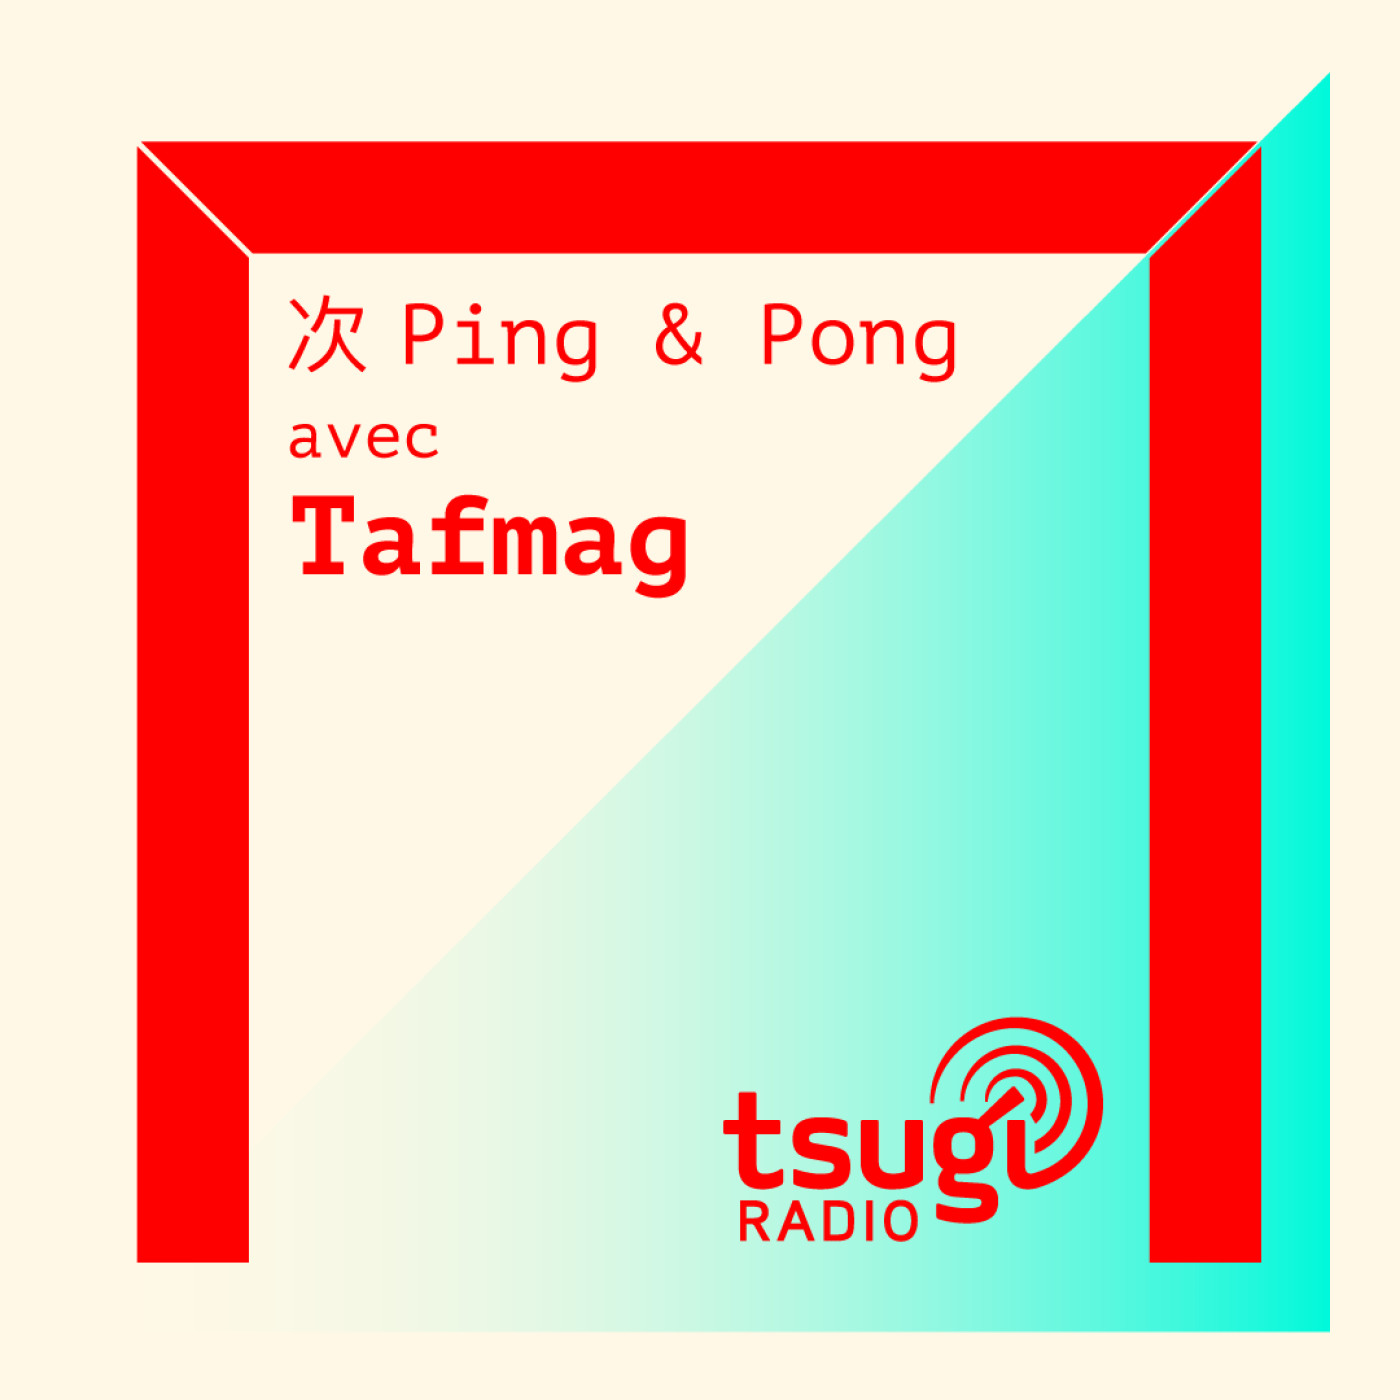 Ping & Pong avec Tafmag, Thomas Smith & Olivier Degorce